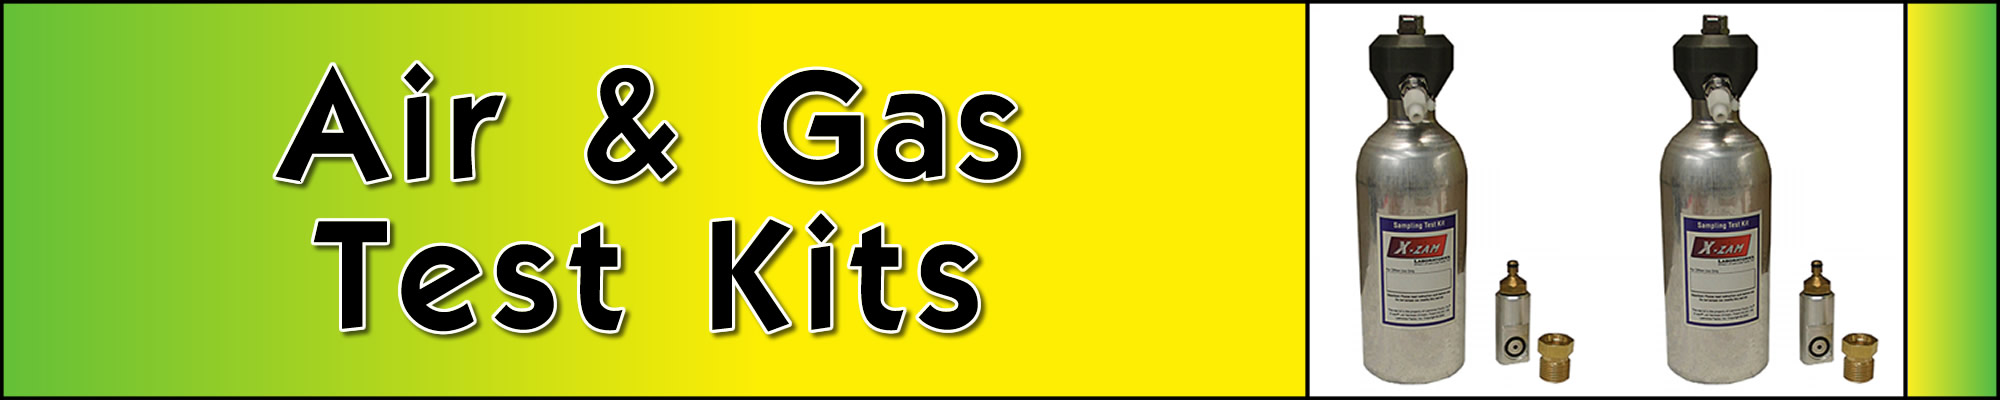 Air & Gas Test Kits